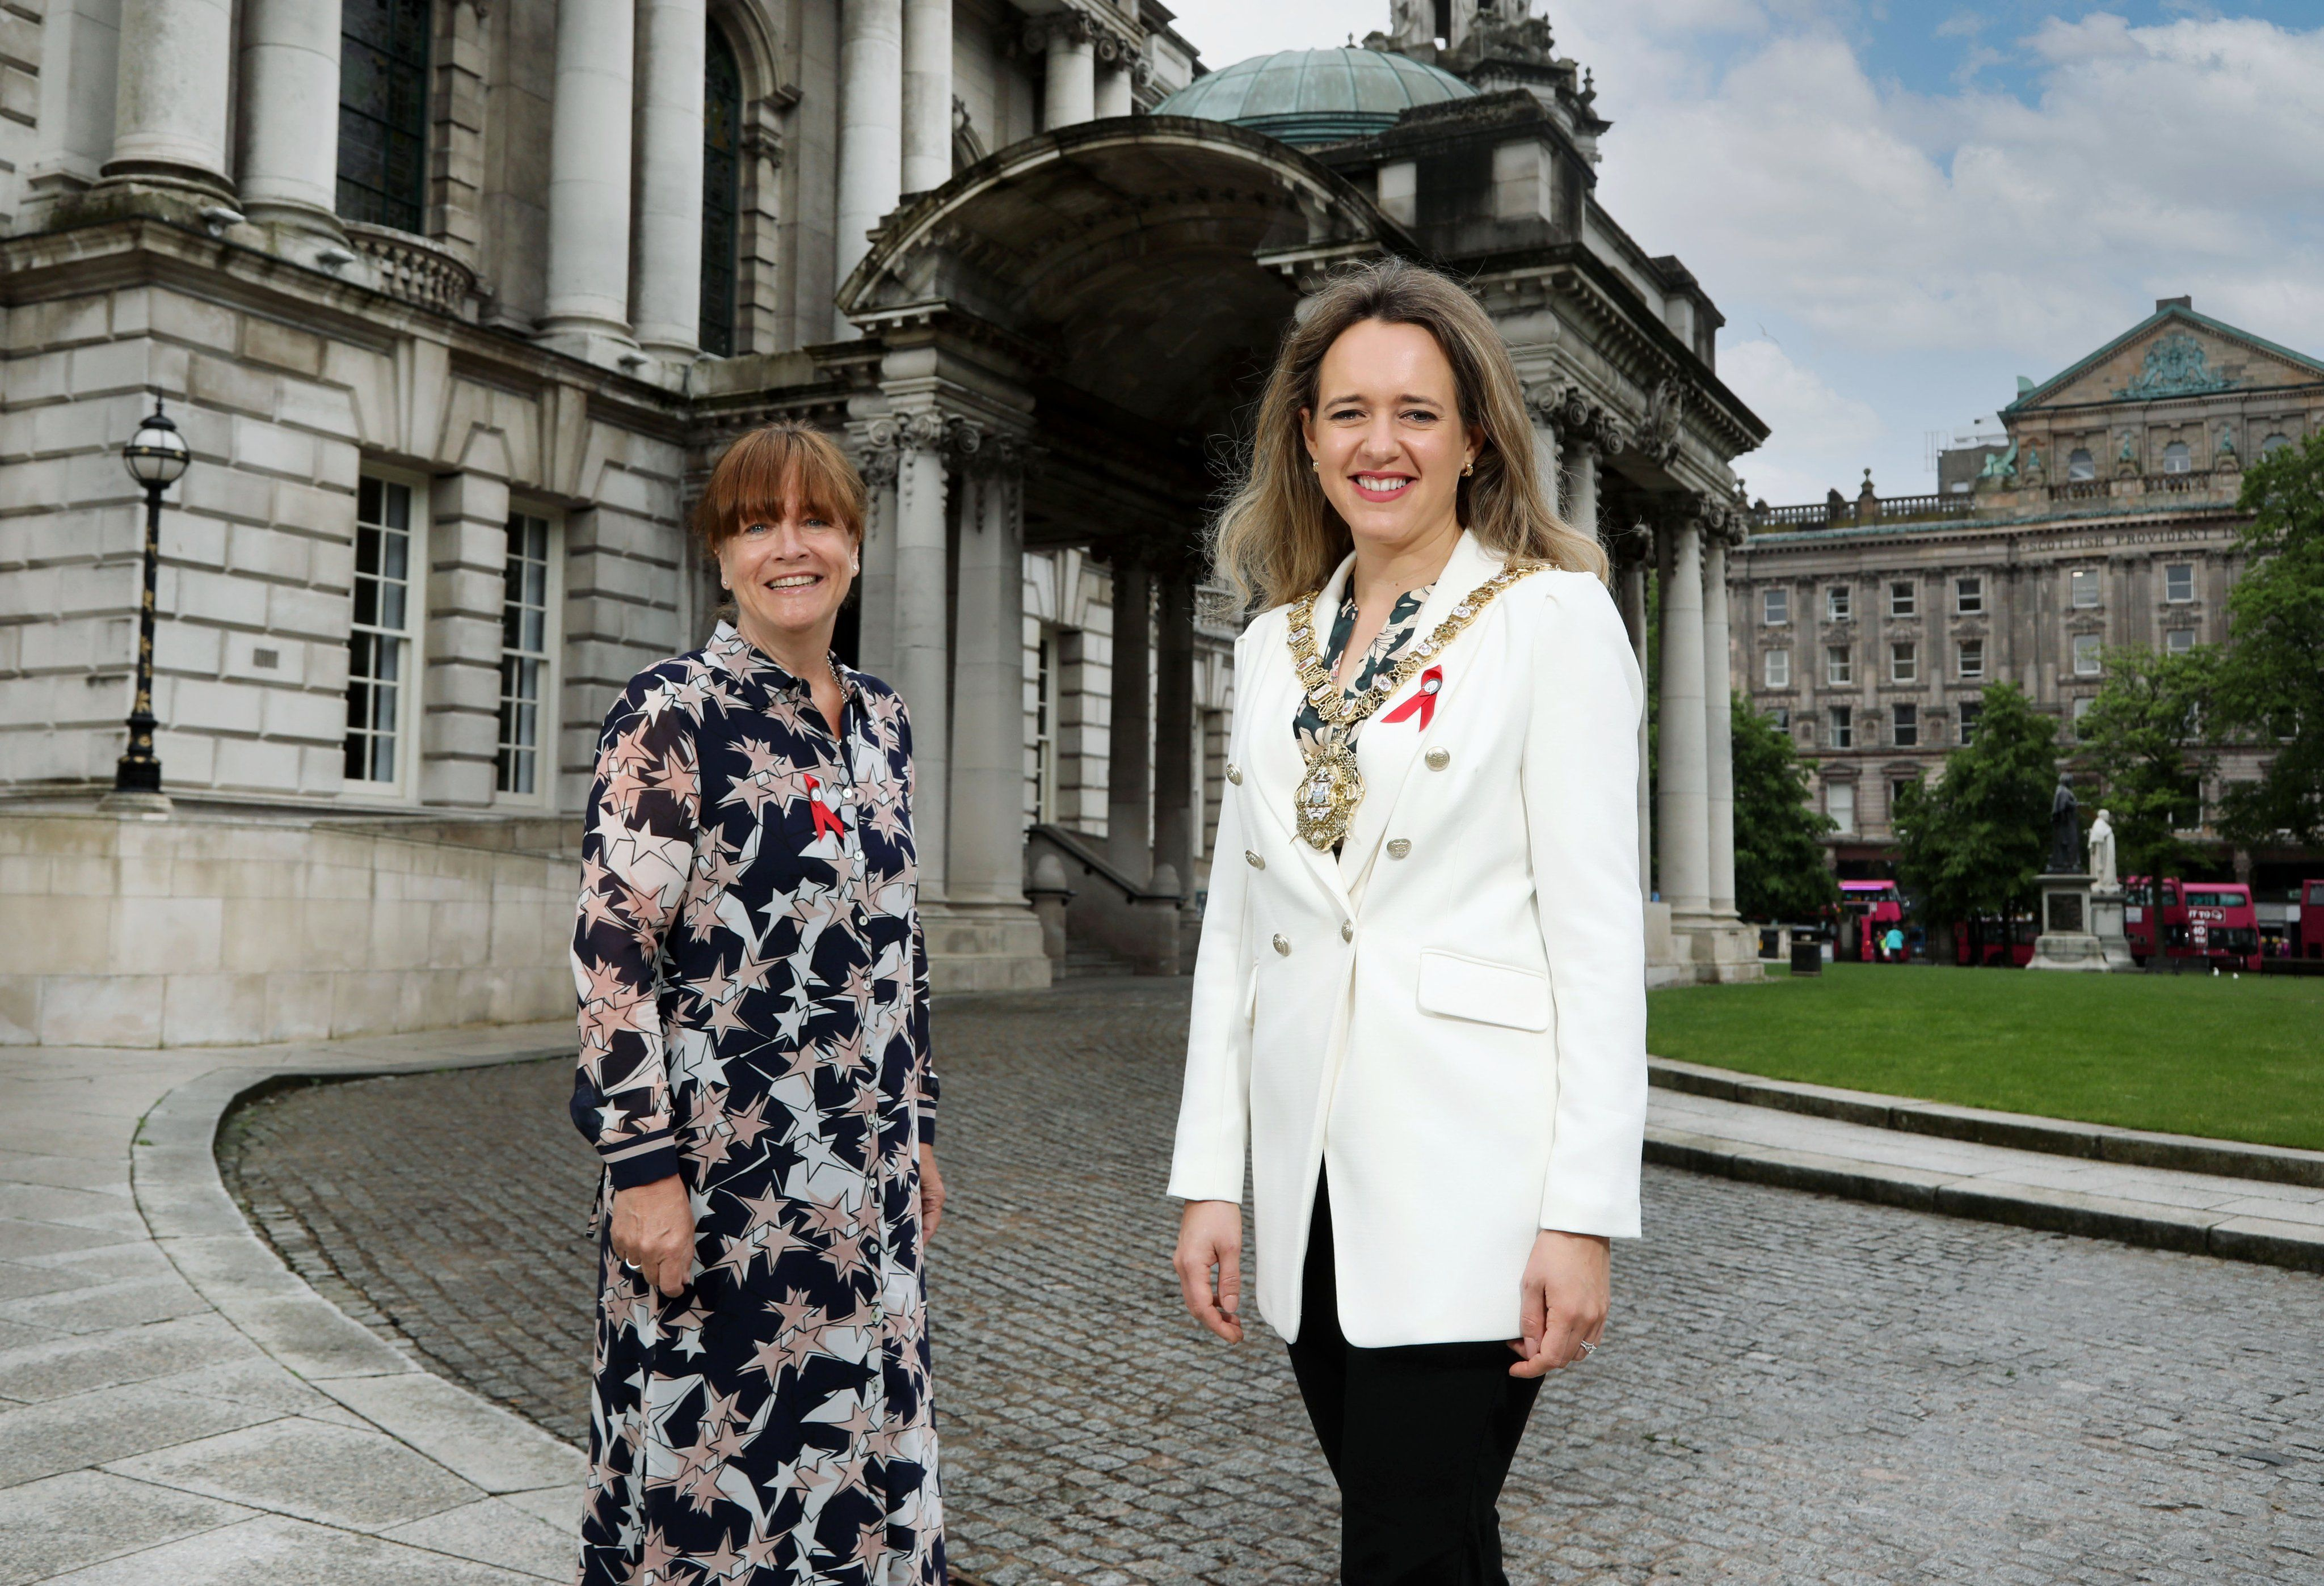 CHARITY SUPPORT: Lord Mayor Councillor Kate Nicholl with Jacquie Richardson, Chief Executive of Positive Life, at Belfast City Hall